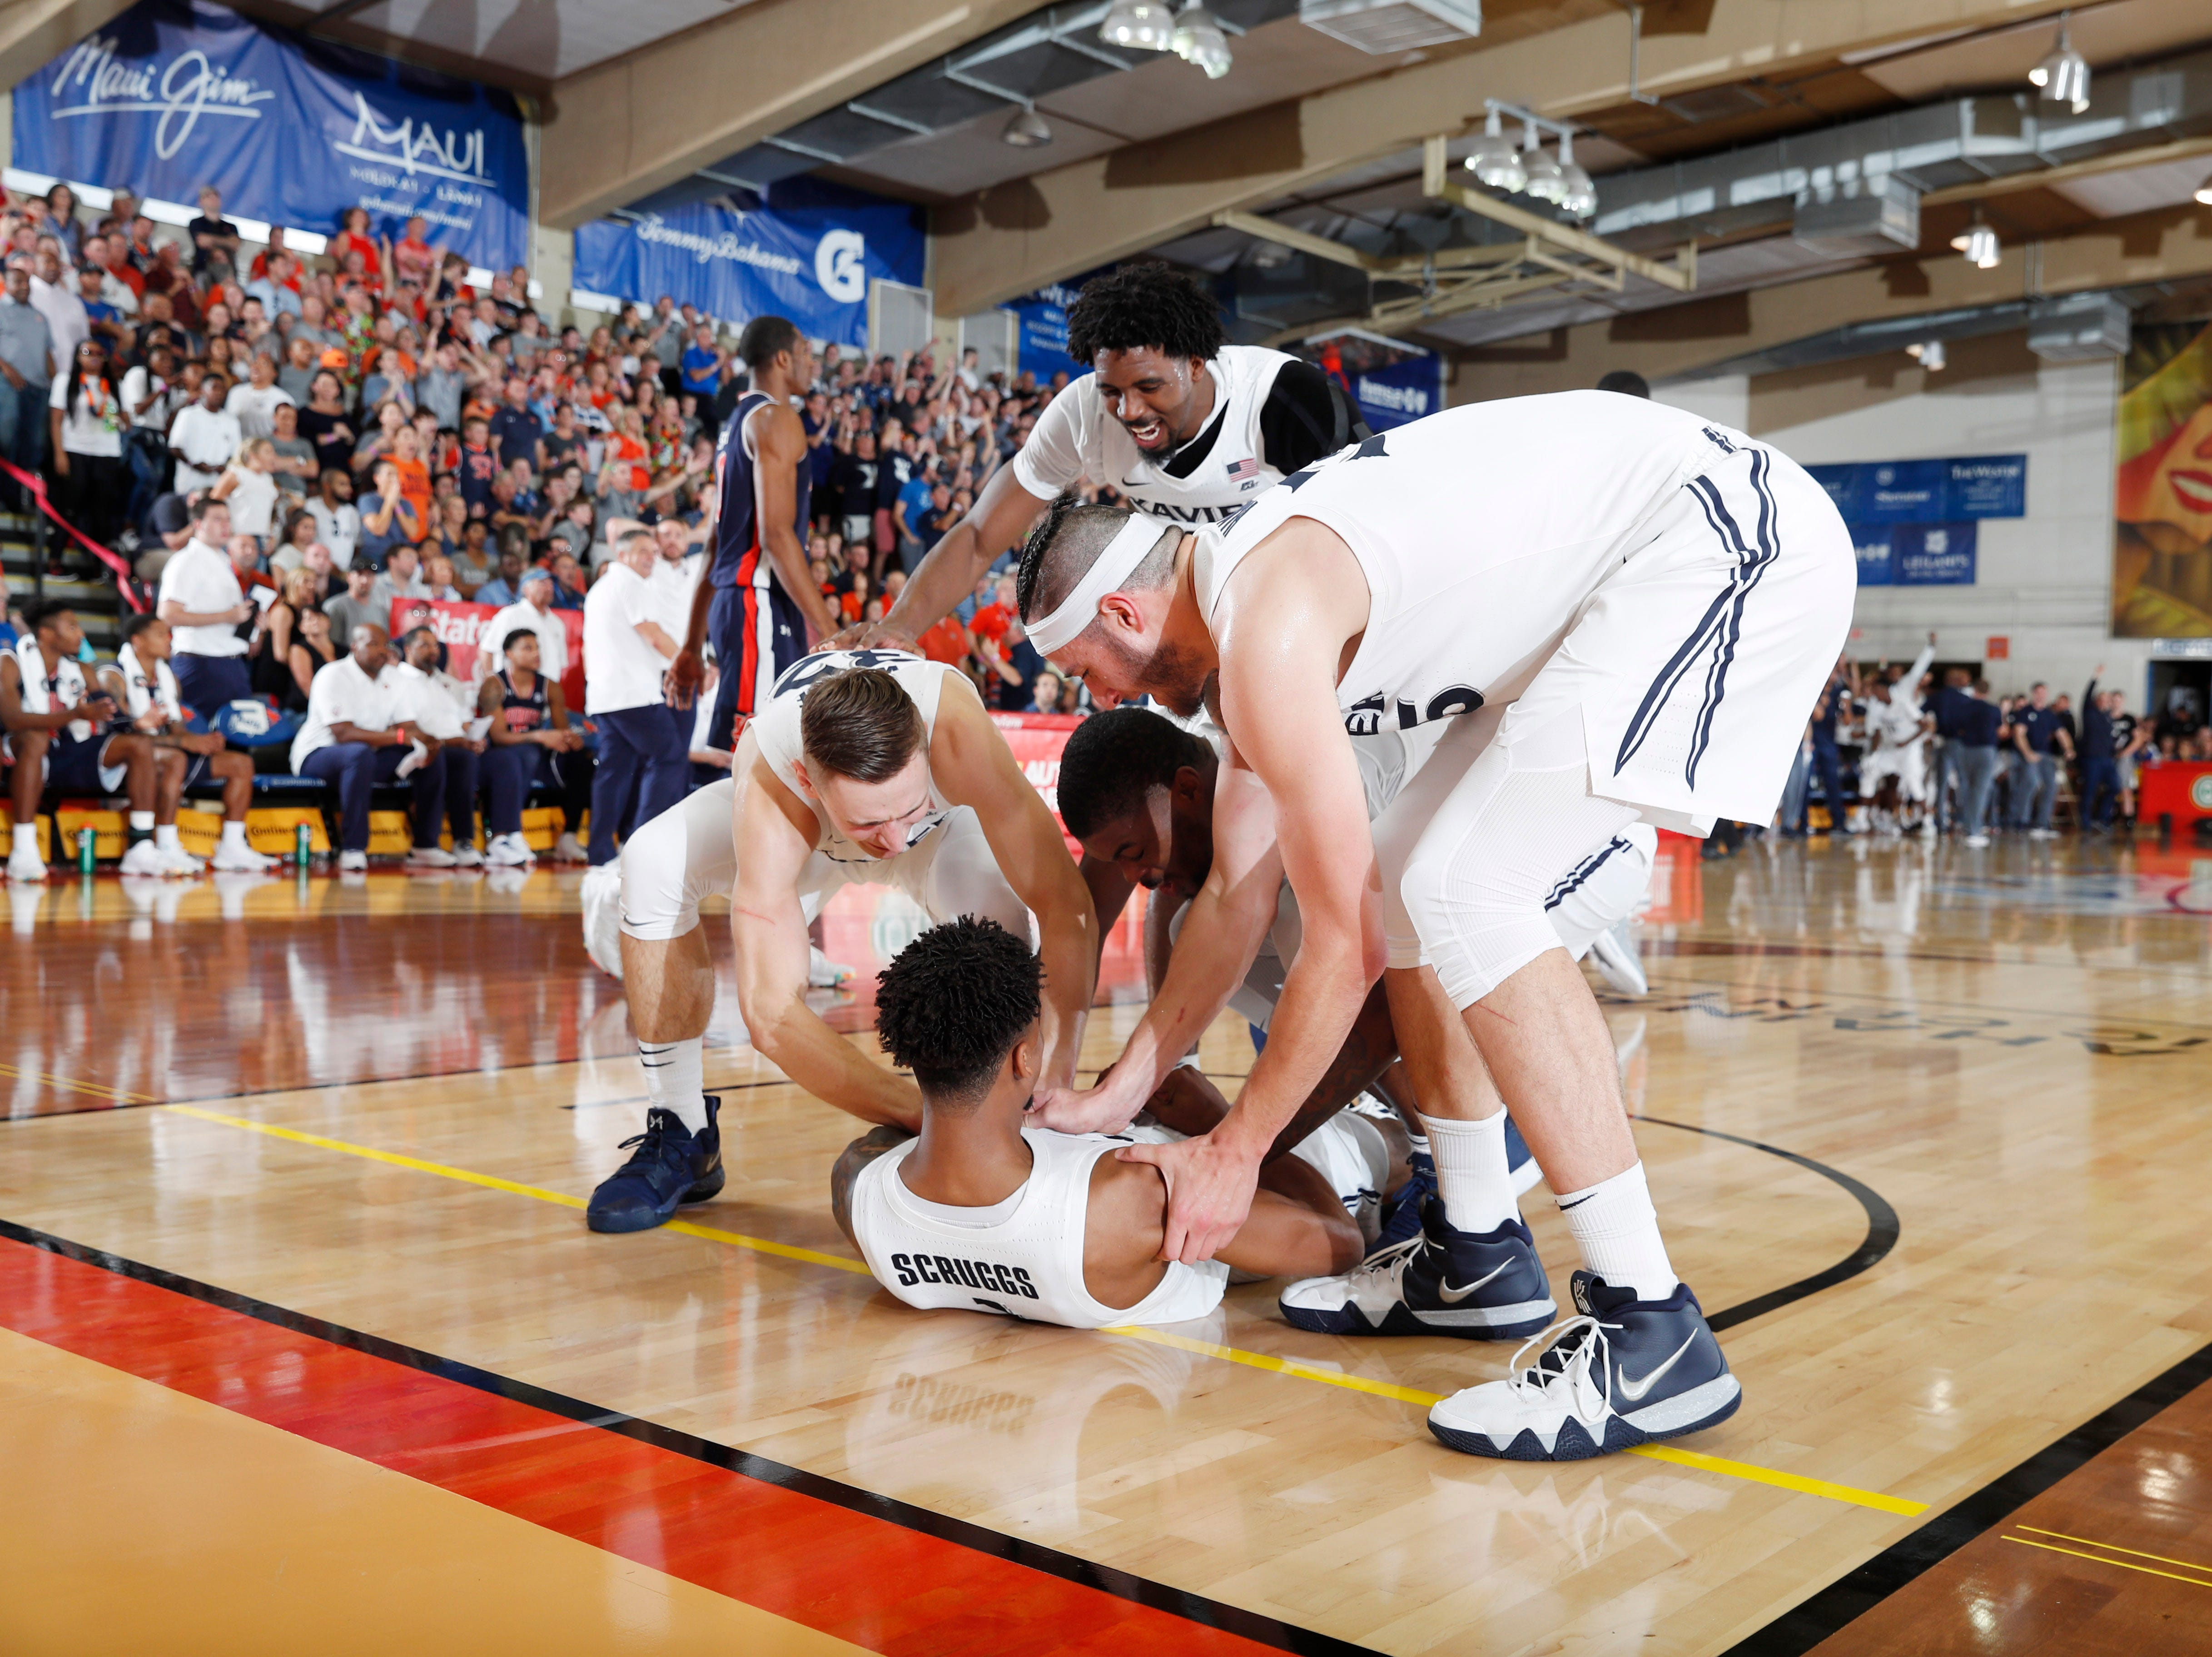 Nov 19, 2018; Lahaina, HI, USA; Xavier Musketeers guard Paul Scruggs (1) is helped off the floor by his teammates  against the Auburn Tigers in the second half during the first round games of the Maui Jim Maui Invitational at Lahaina Civic Center. Mandatory Credit: Brian Spurlock-USA TODAY Sports